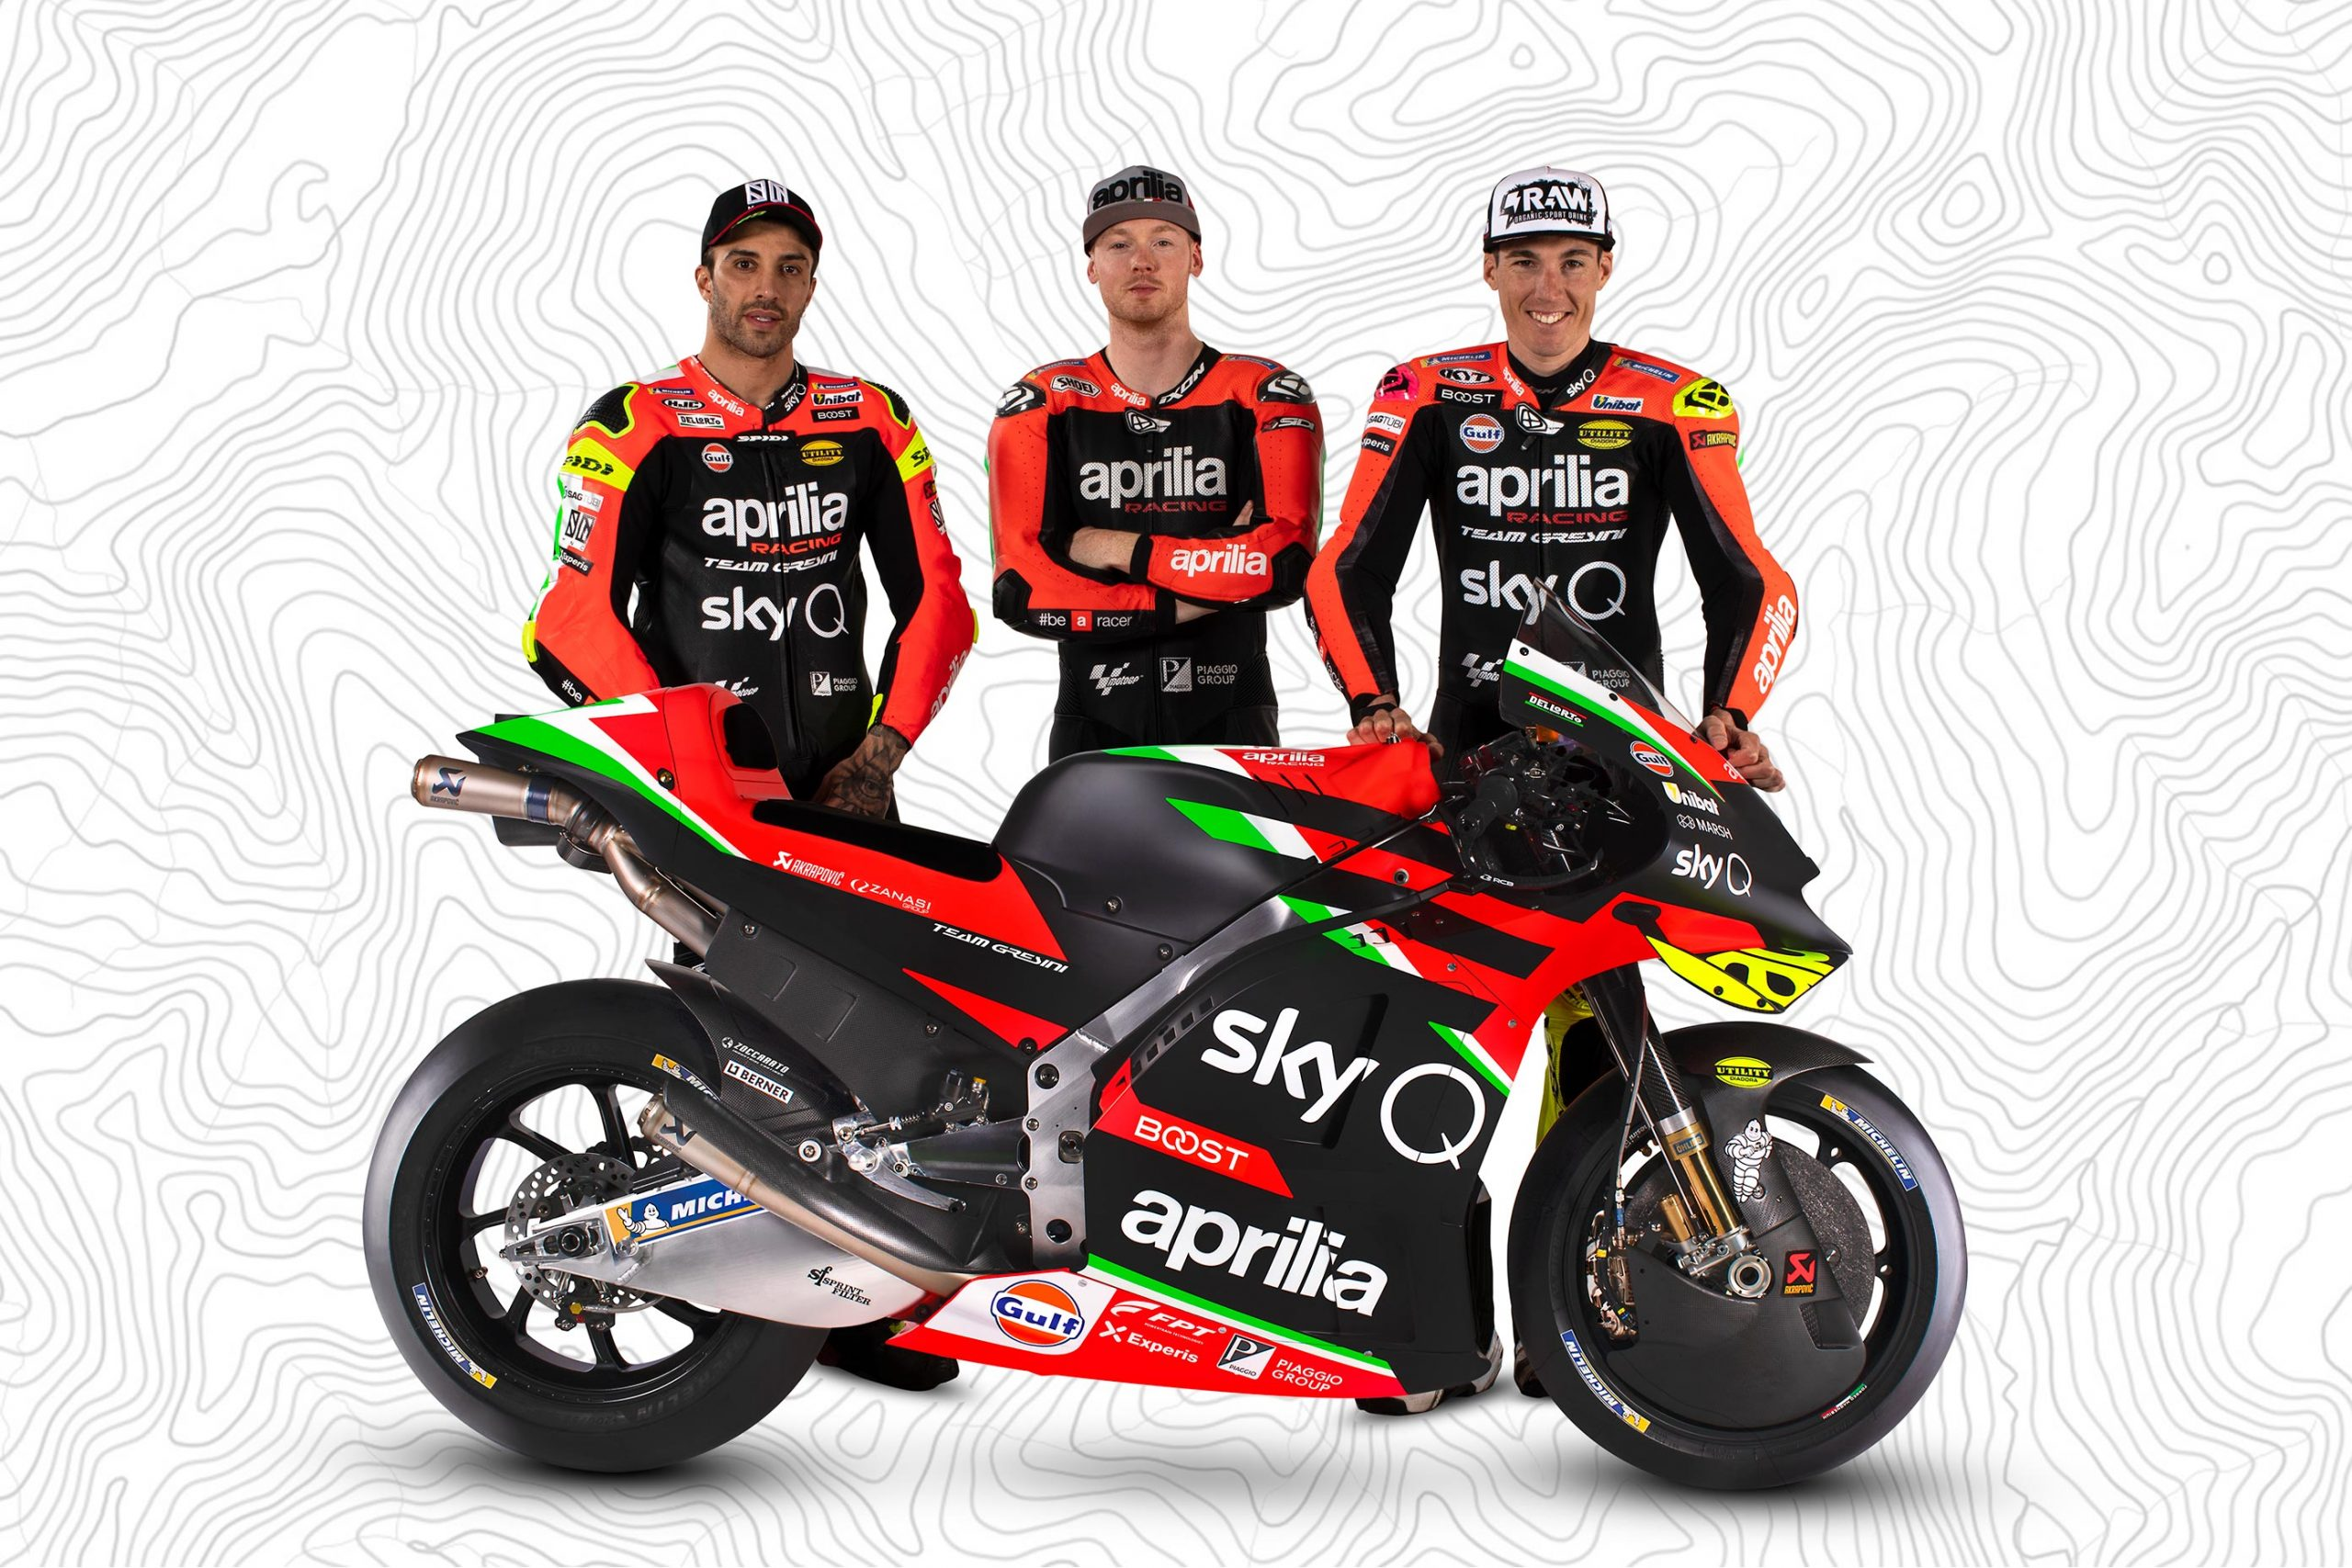 Aprilia S Motogp Team Launch Perfectly Tells Their Story Right Now Asphalt Rubber